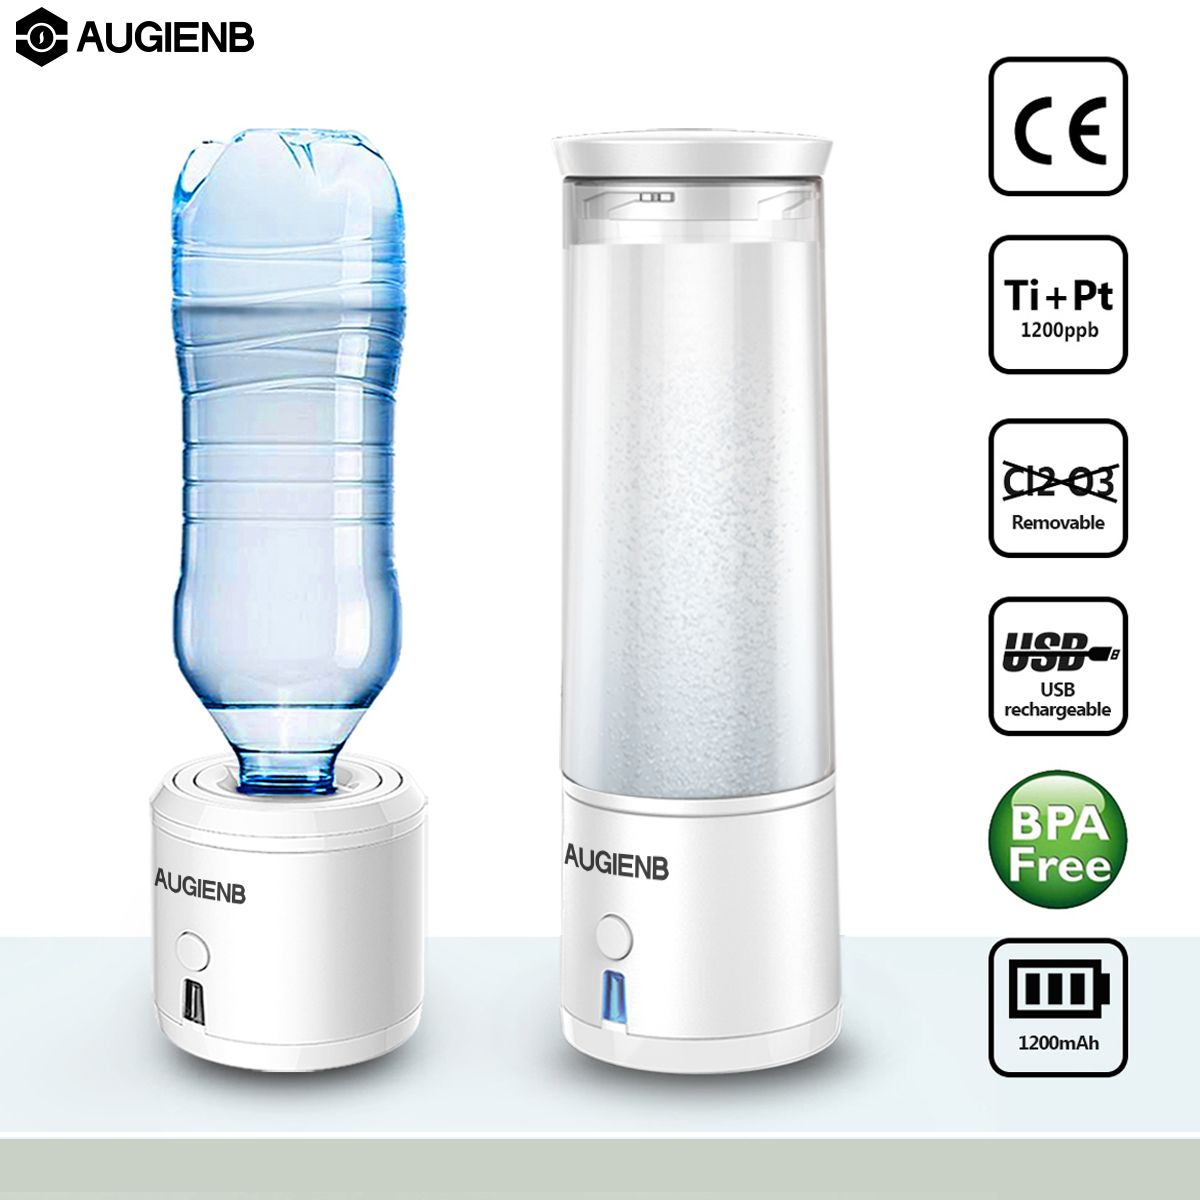 AUGIENB SPE/PEM Membrane H2 Rich ydrogen Water Bottle Electrolysis Ionizer Generator USB Rechargeable removal O3 CL2